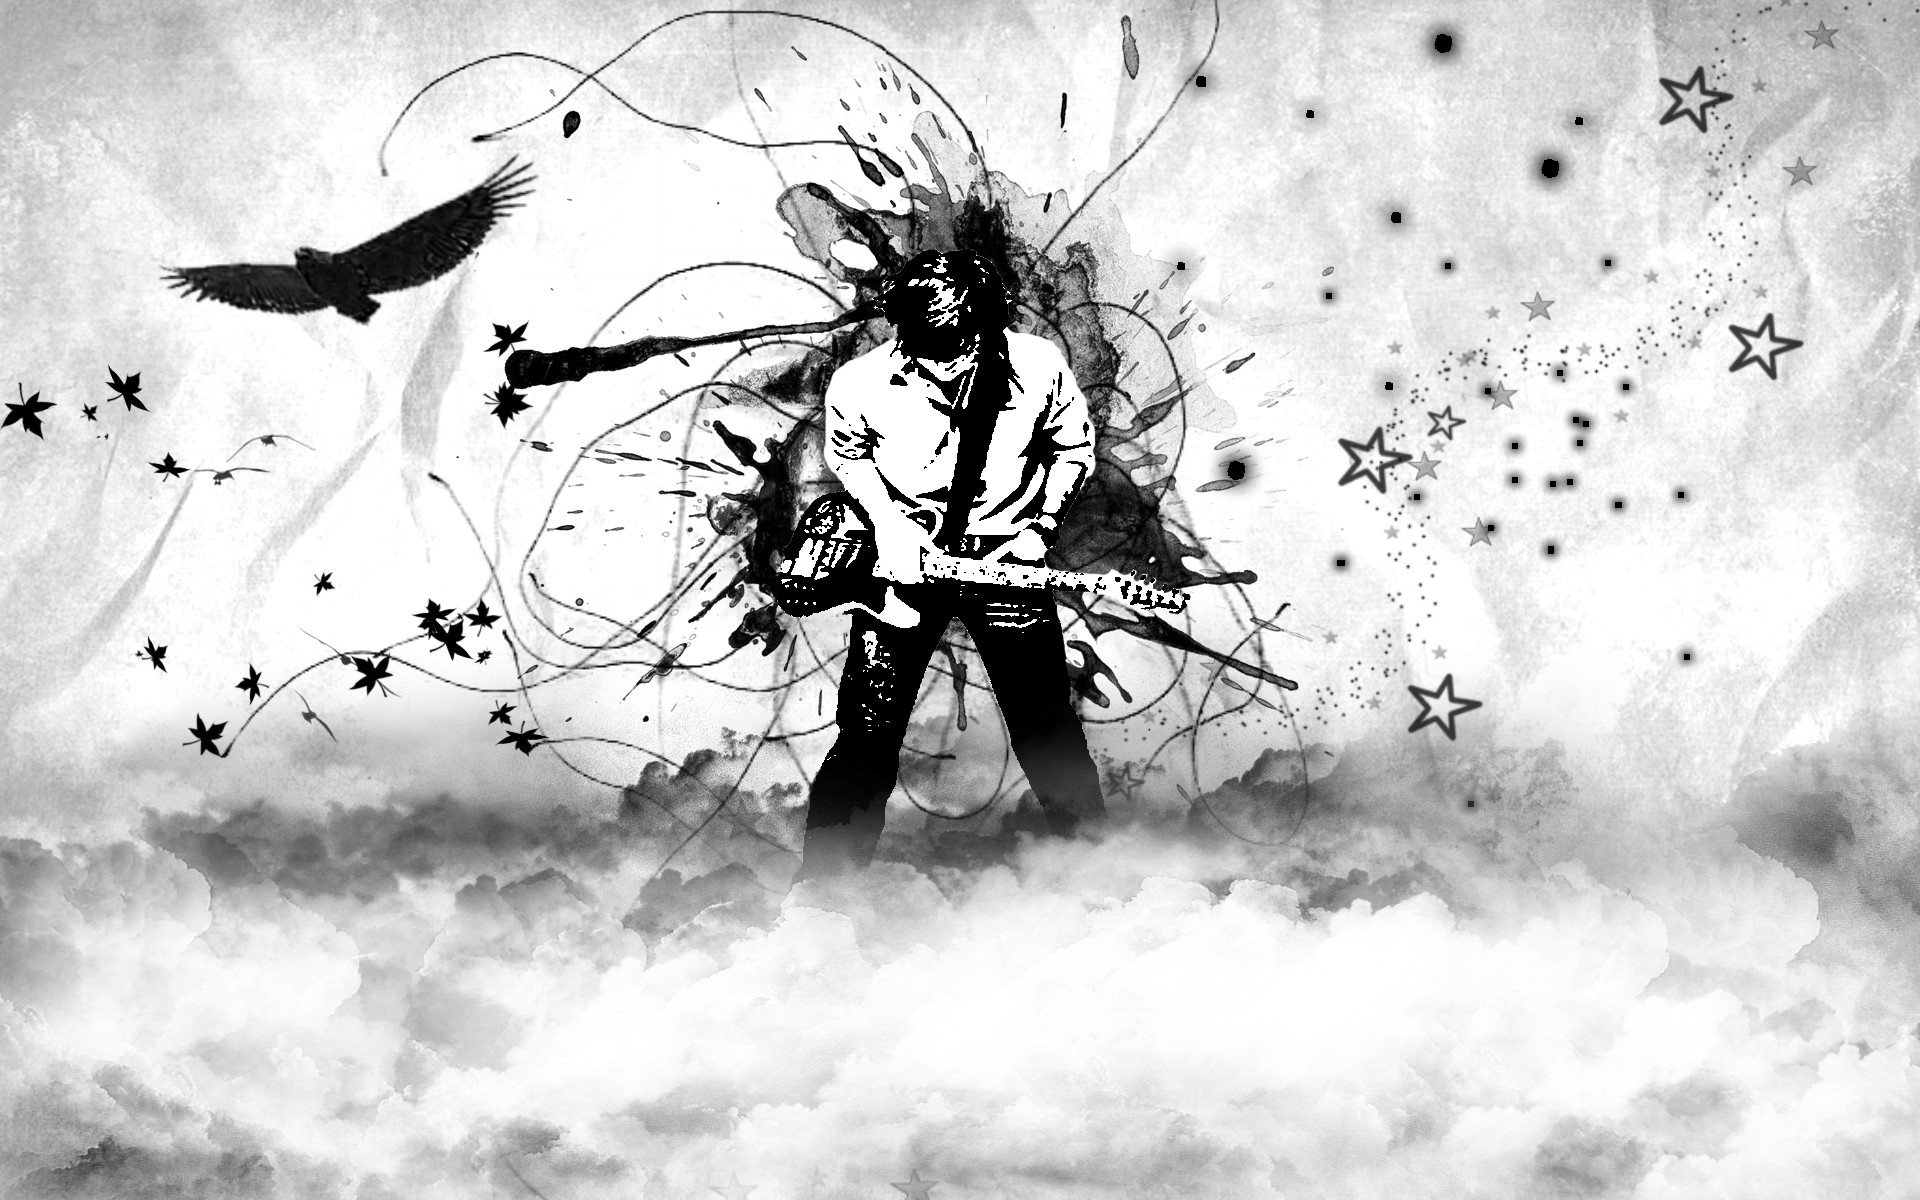 1920x1200 cool black and white wallpaper by missycla on deviantart with black and white  wallpaper.